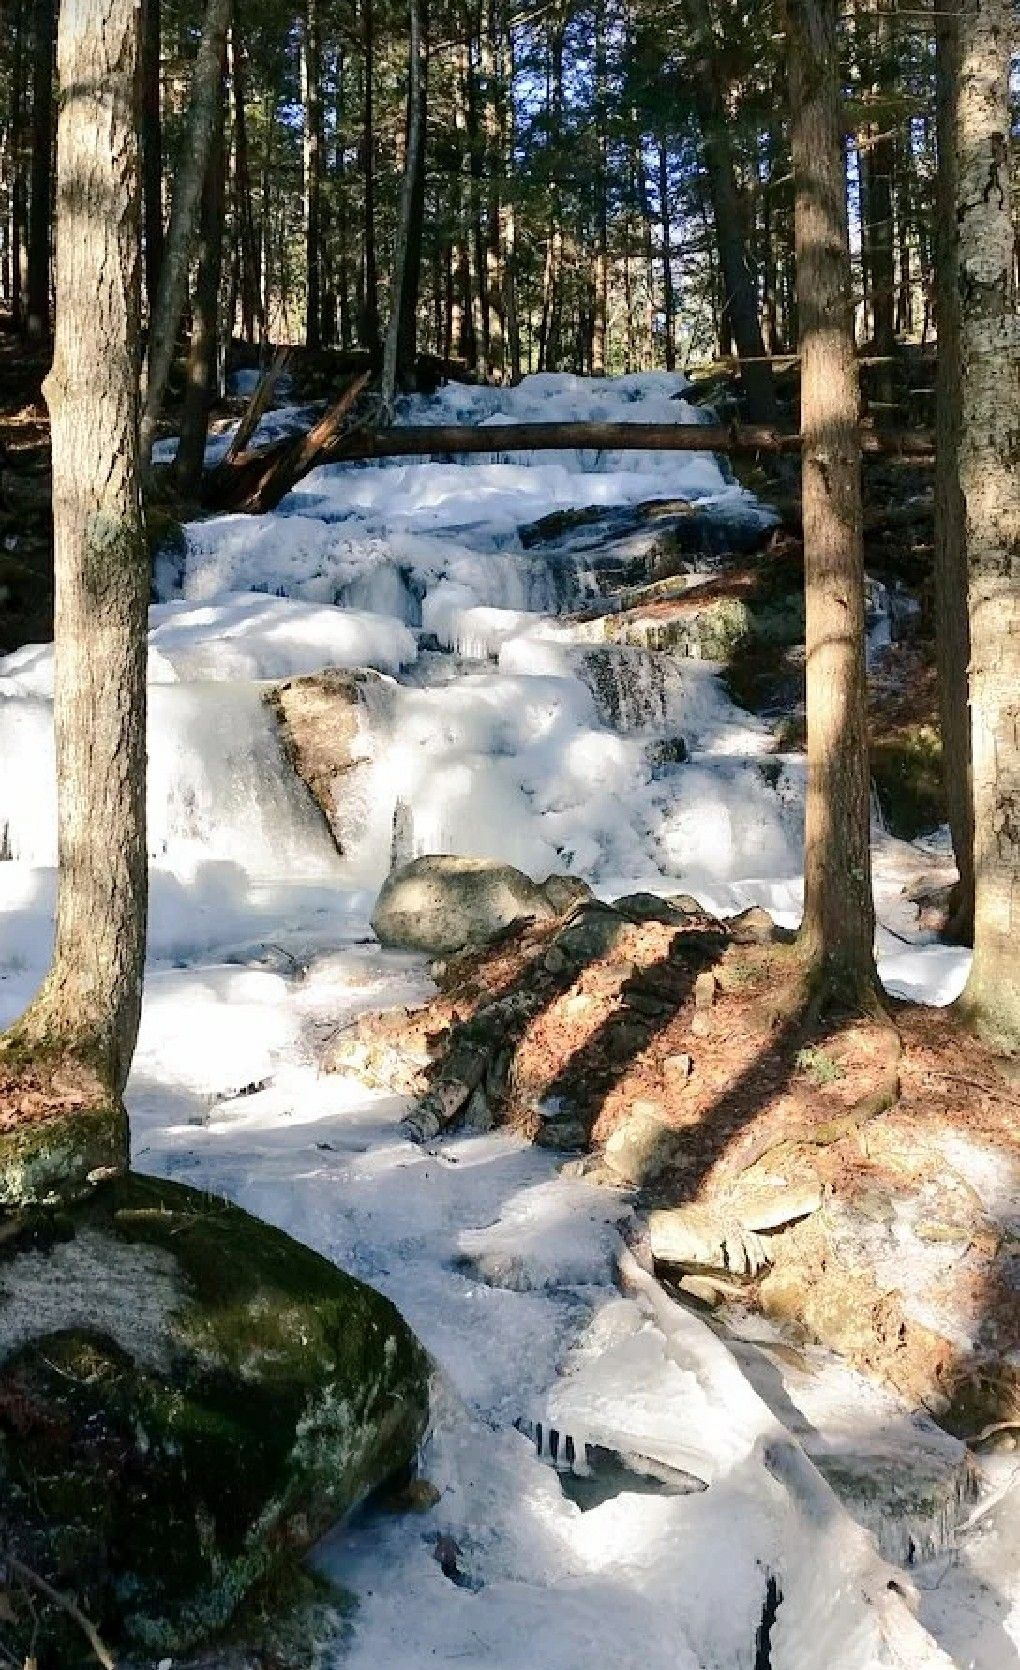 Roaring Brook Falls from Afar in the Adirondack Mountains